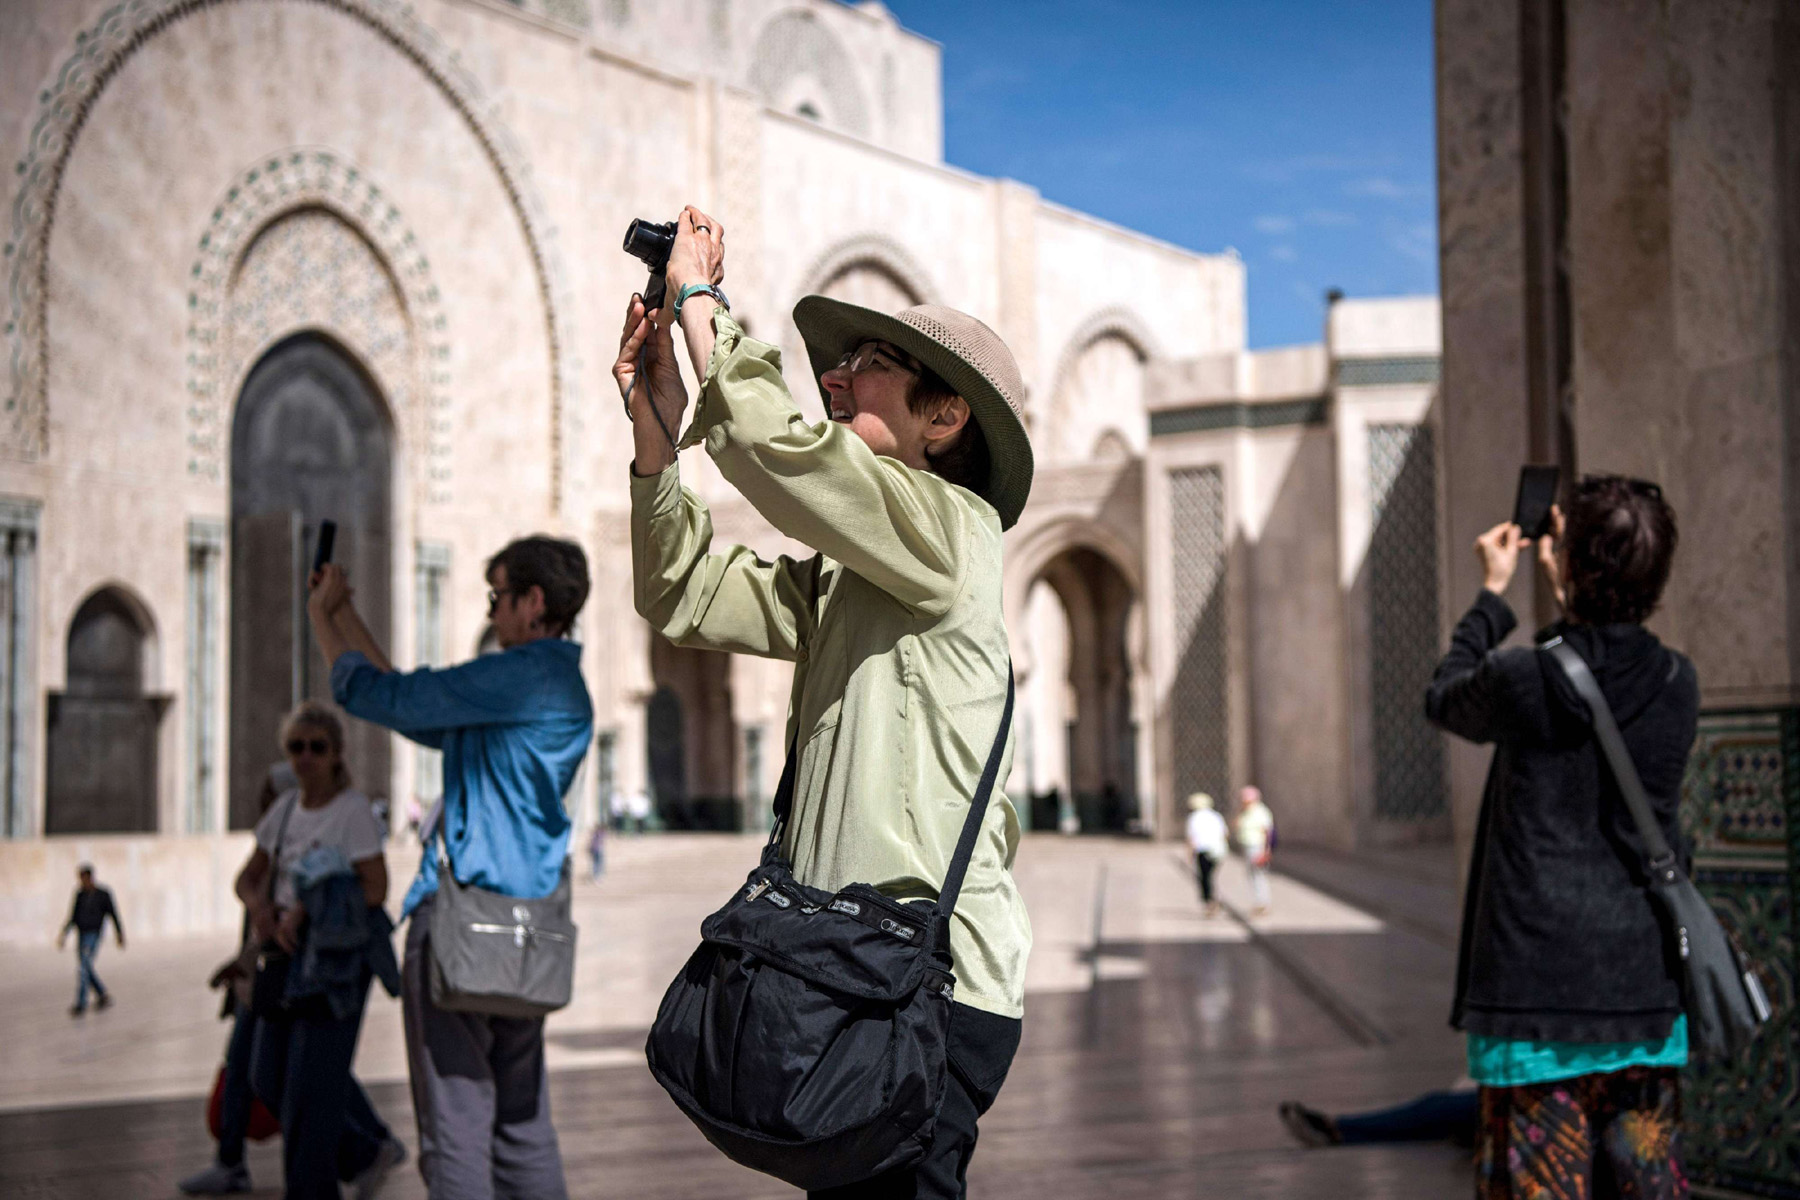 Tourists take pictures while visiting the Hassan II Grand Mosque in Morocco's Casablanca, last March. (AFP)